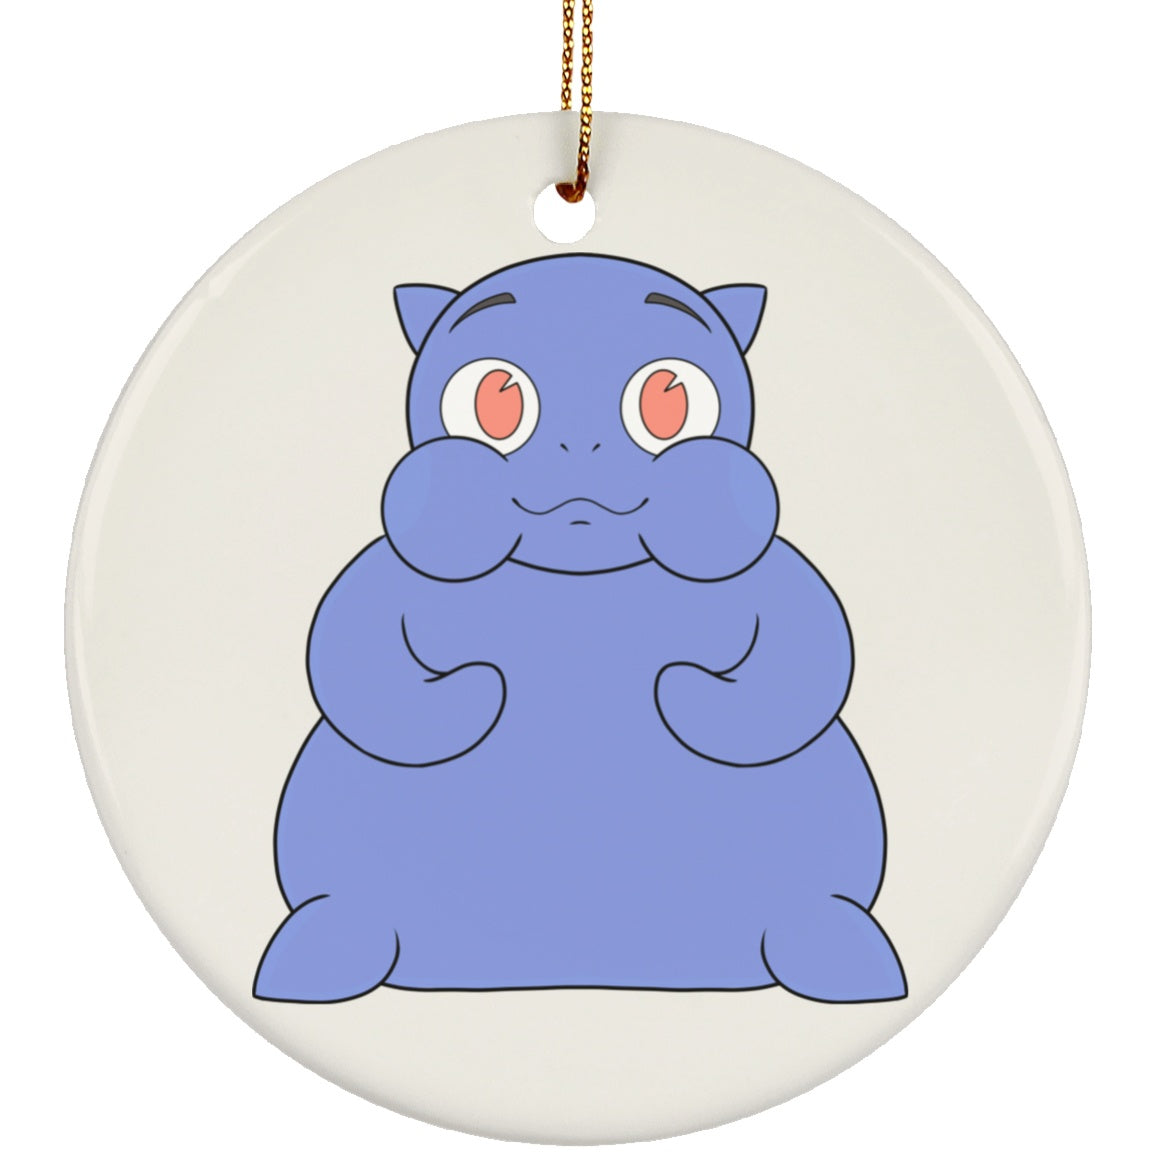 Housewares - Gravey The Graves' Disease Monster Ceramic Circle Ornament